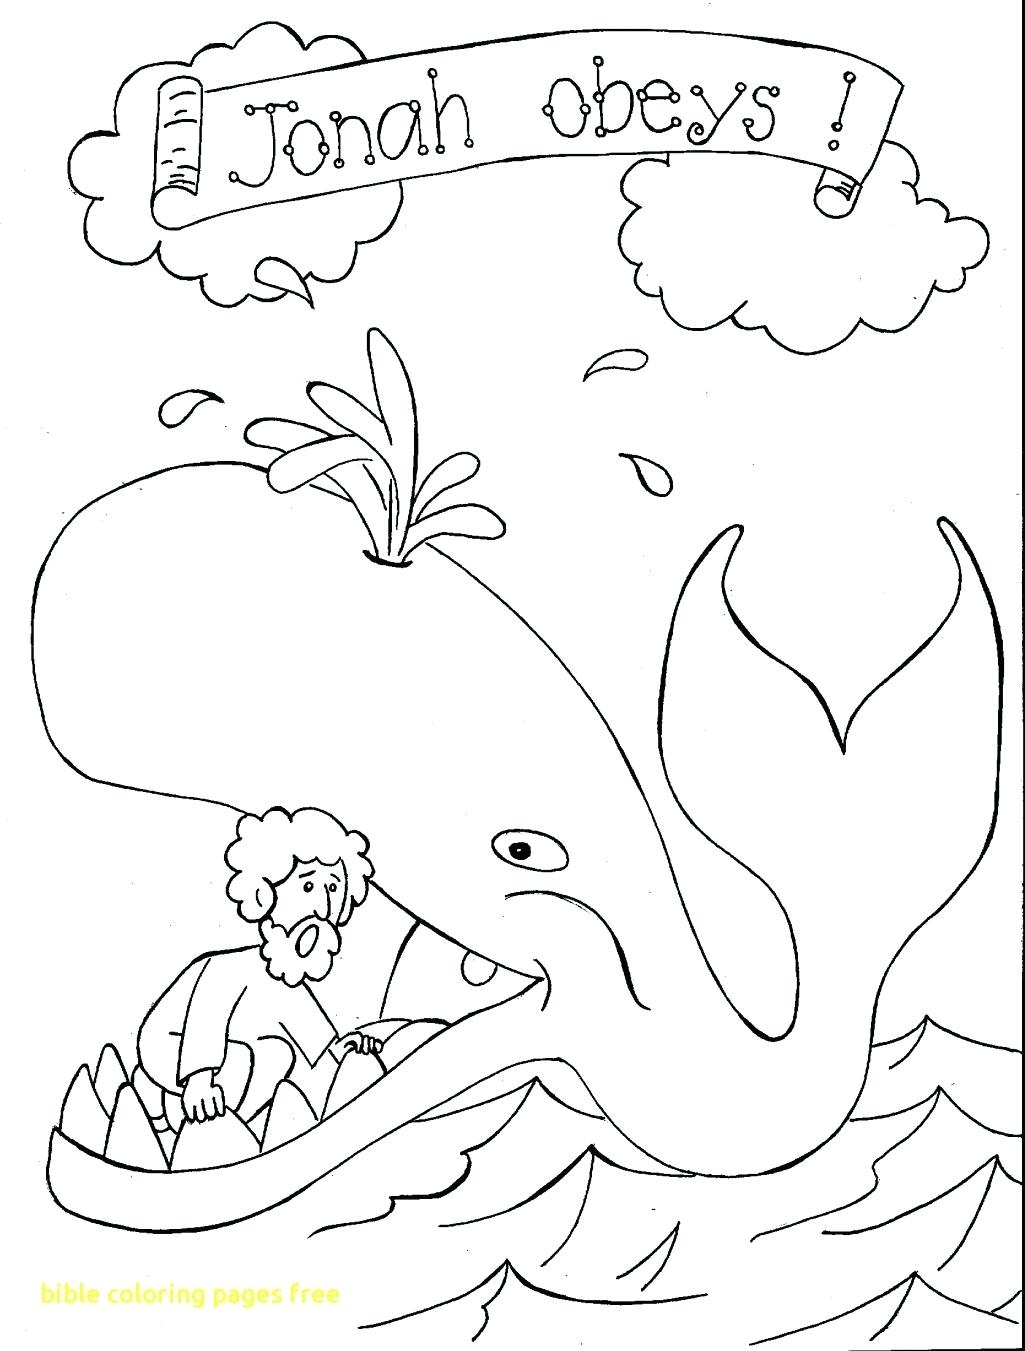 1025x1351 Coloring Christian Kids Coloring Pages